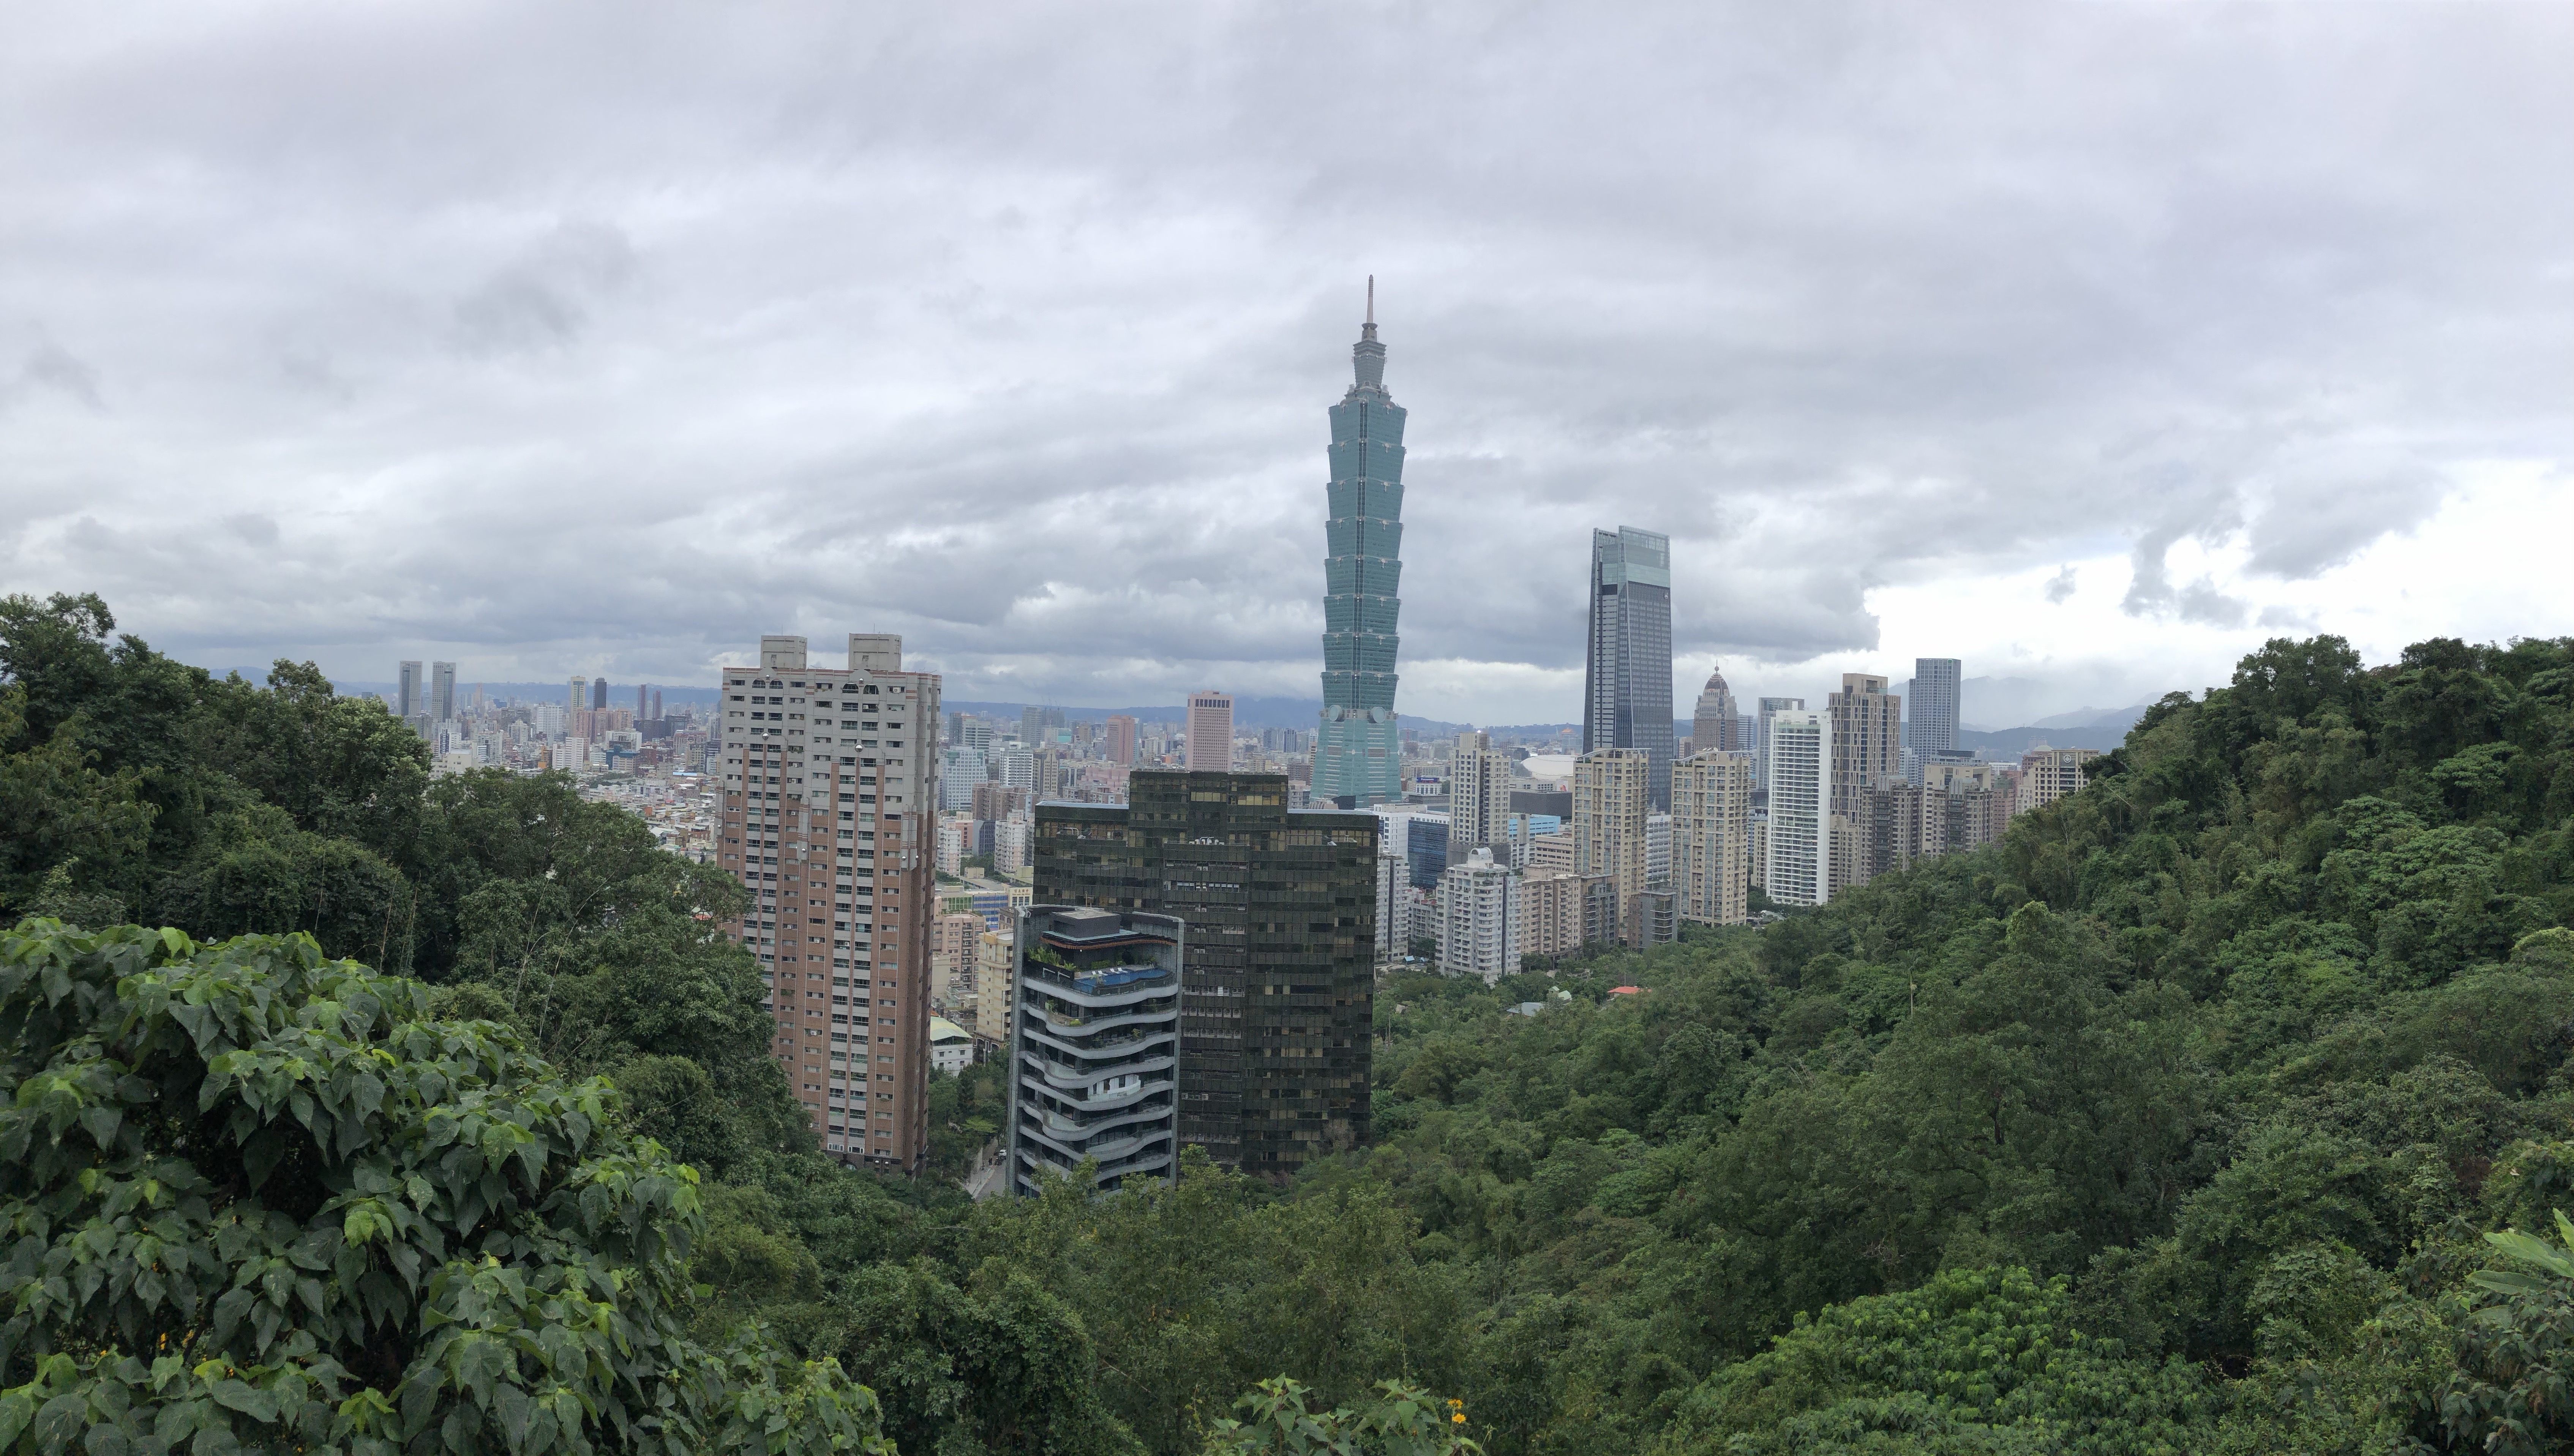 Hiking Elephant Mountain (象山) for the Best View of Taipei